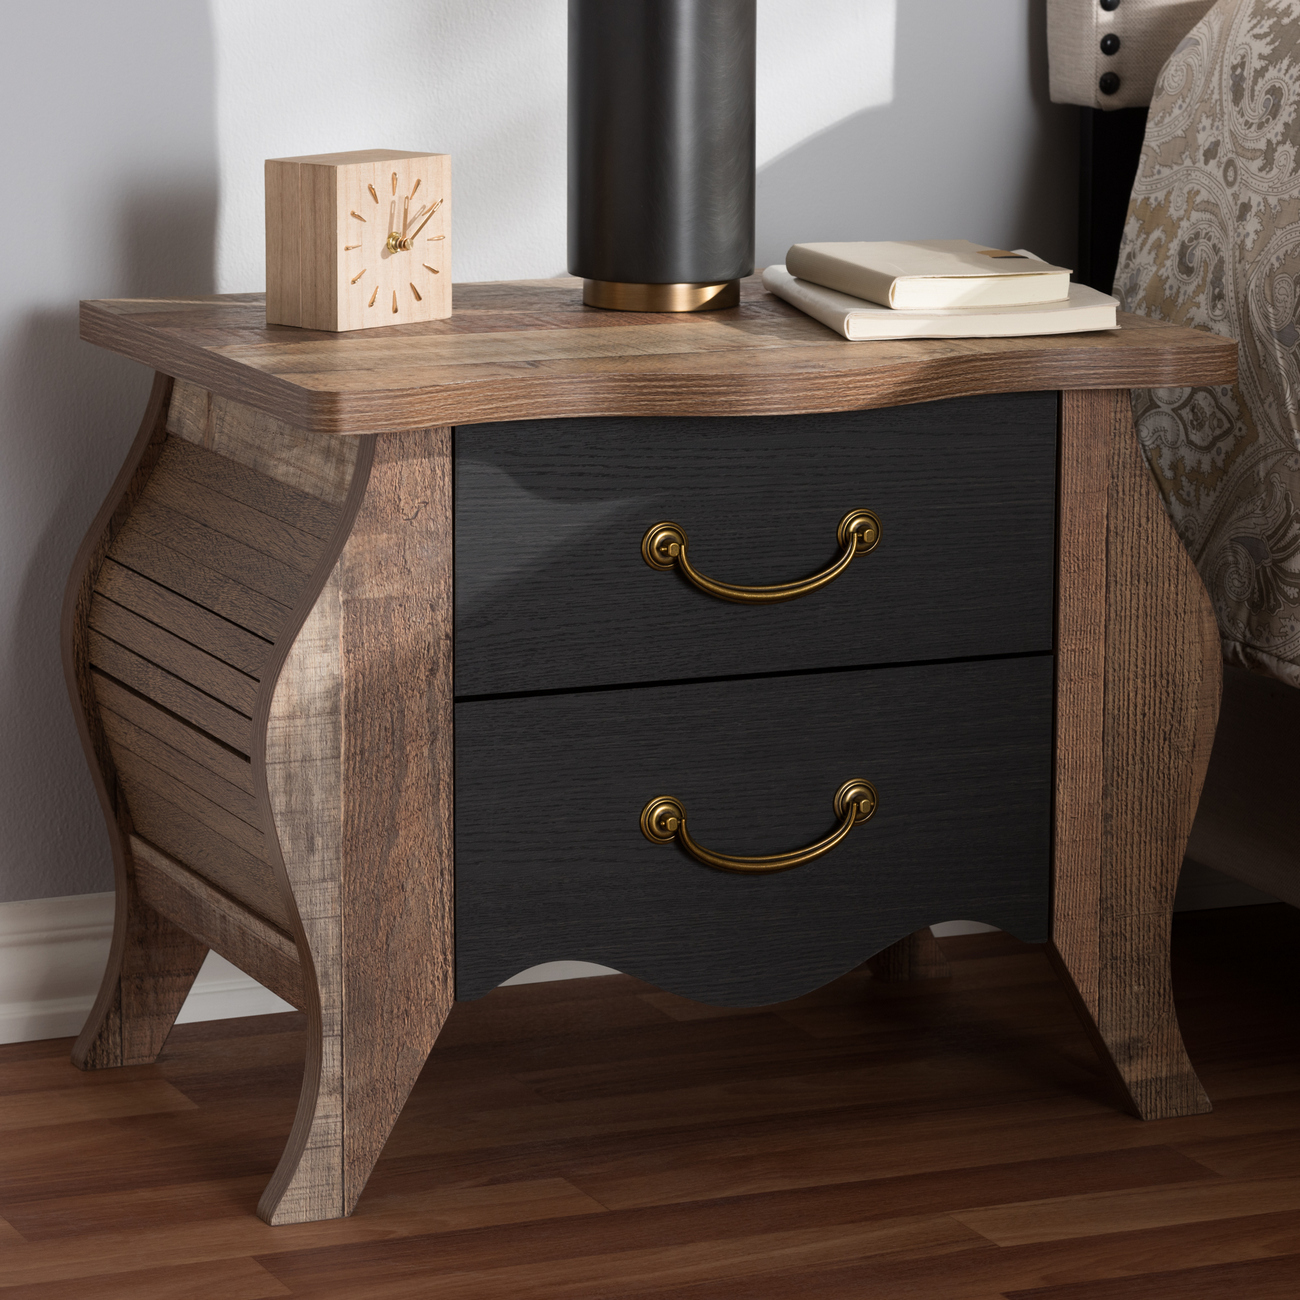 Baxton Studio Romilly Country Cottage Farmhouse Black Oak Finished Wood 2 Drawer Nightstand Br990063 Blackoak 2dw Ns